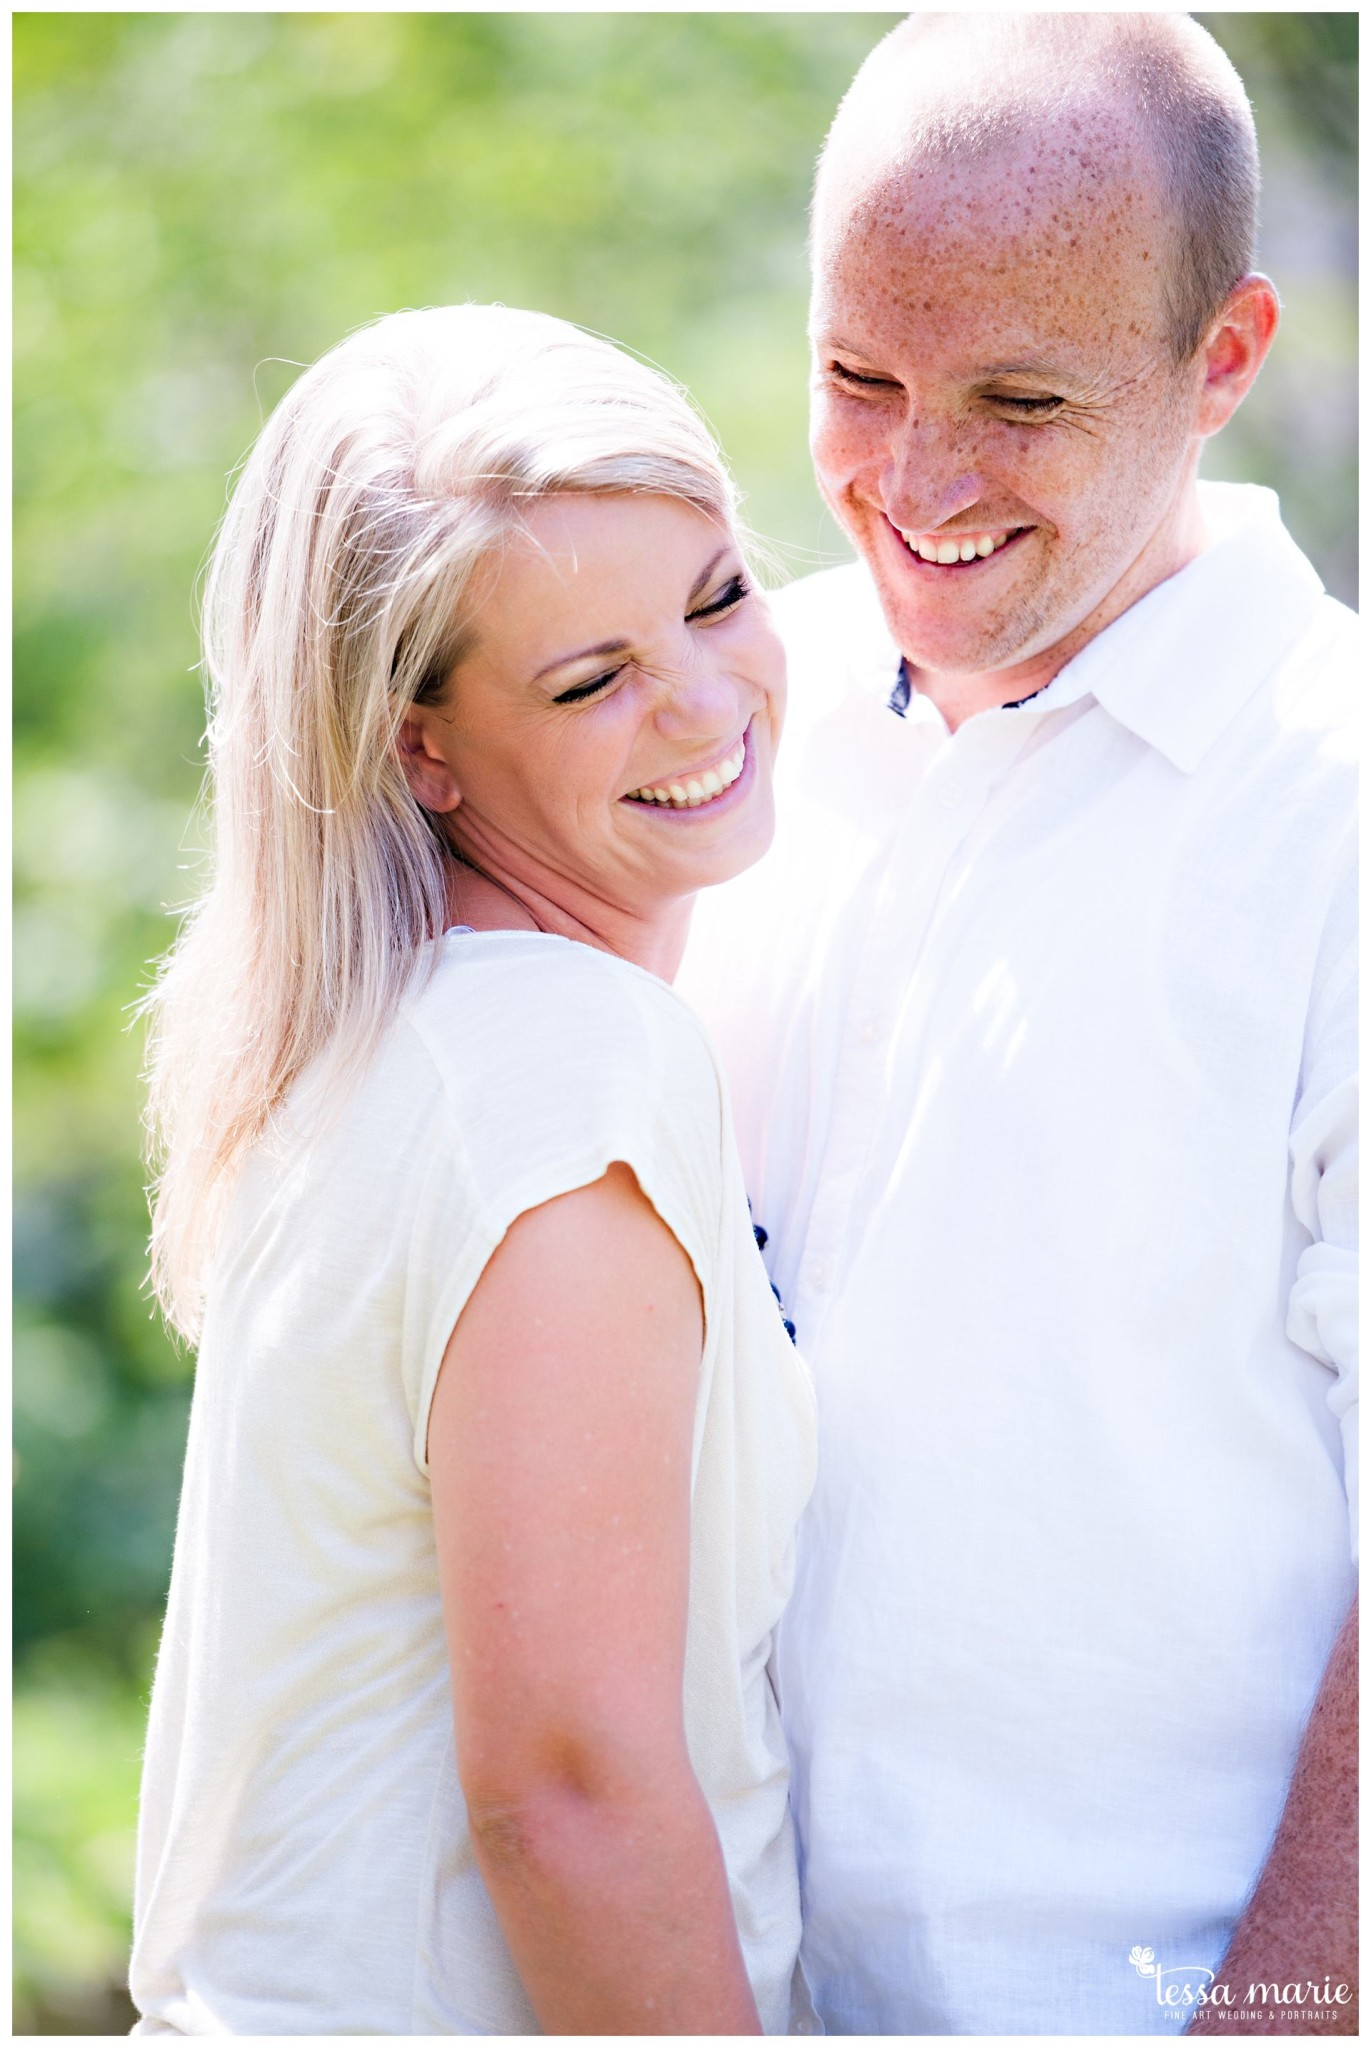 tessa_marie_weddings_legacy_story_focused_wedding_pictures_atlanta_wedding_photographer_family_pictures_portrait_Fine_art_memories_mothers_day_spring_moments_0256